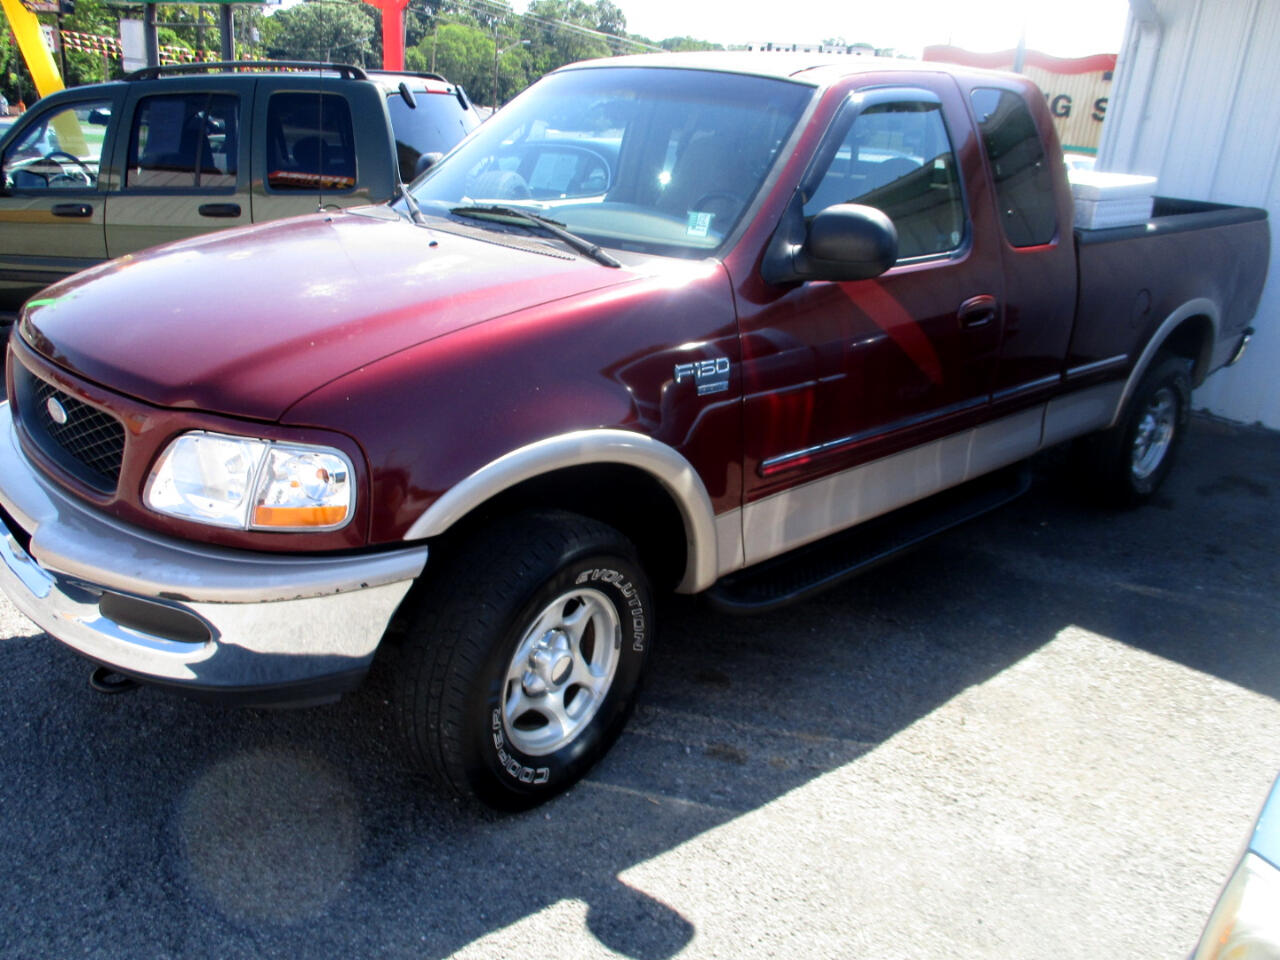 Cars For Sale Knoxville Tn >> Buy Here Pay Here Cars For Sale Knoxville Tn 37912 Green Light Auto Inc